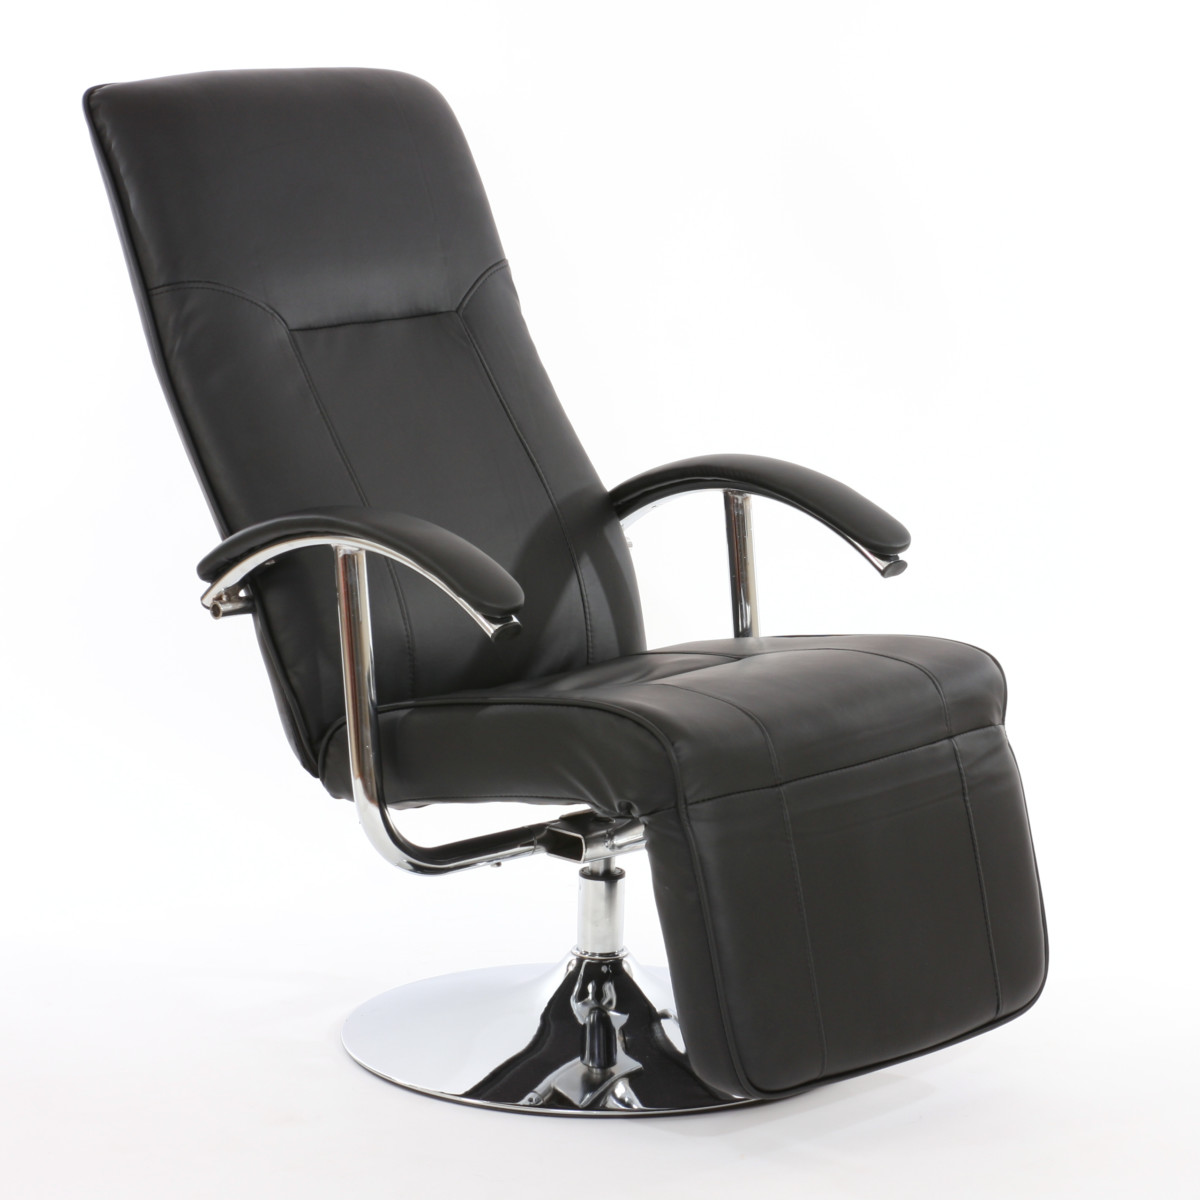 Fauteuil Relax 1 Place Fauteuil Relax Simili Cuir Topiwall